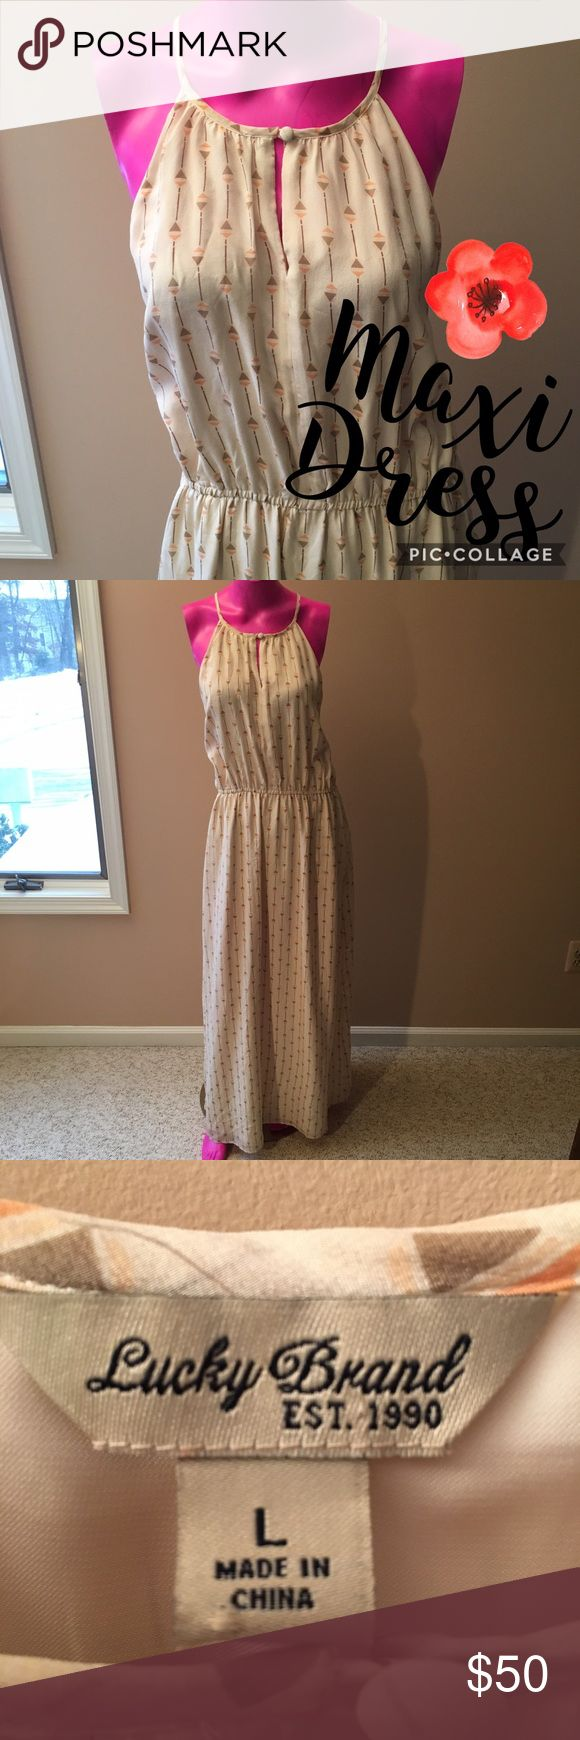 LUCKY BRAND Maxi Dress Off-white spaghetti strap racerback maxi dress with tribal-like triangle print in light orange, olive, pale pink & brown as seen in photo #4. Perfect condition, like new. Beautiful for a beach vacation or a night out in the spring or summer! Lucky Brand Dresses Maxi